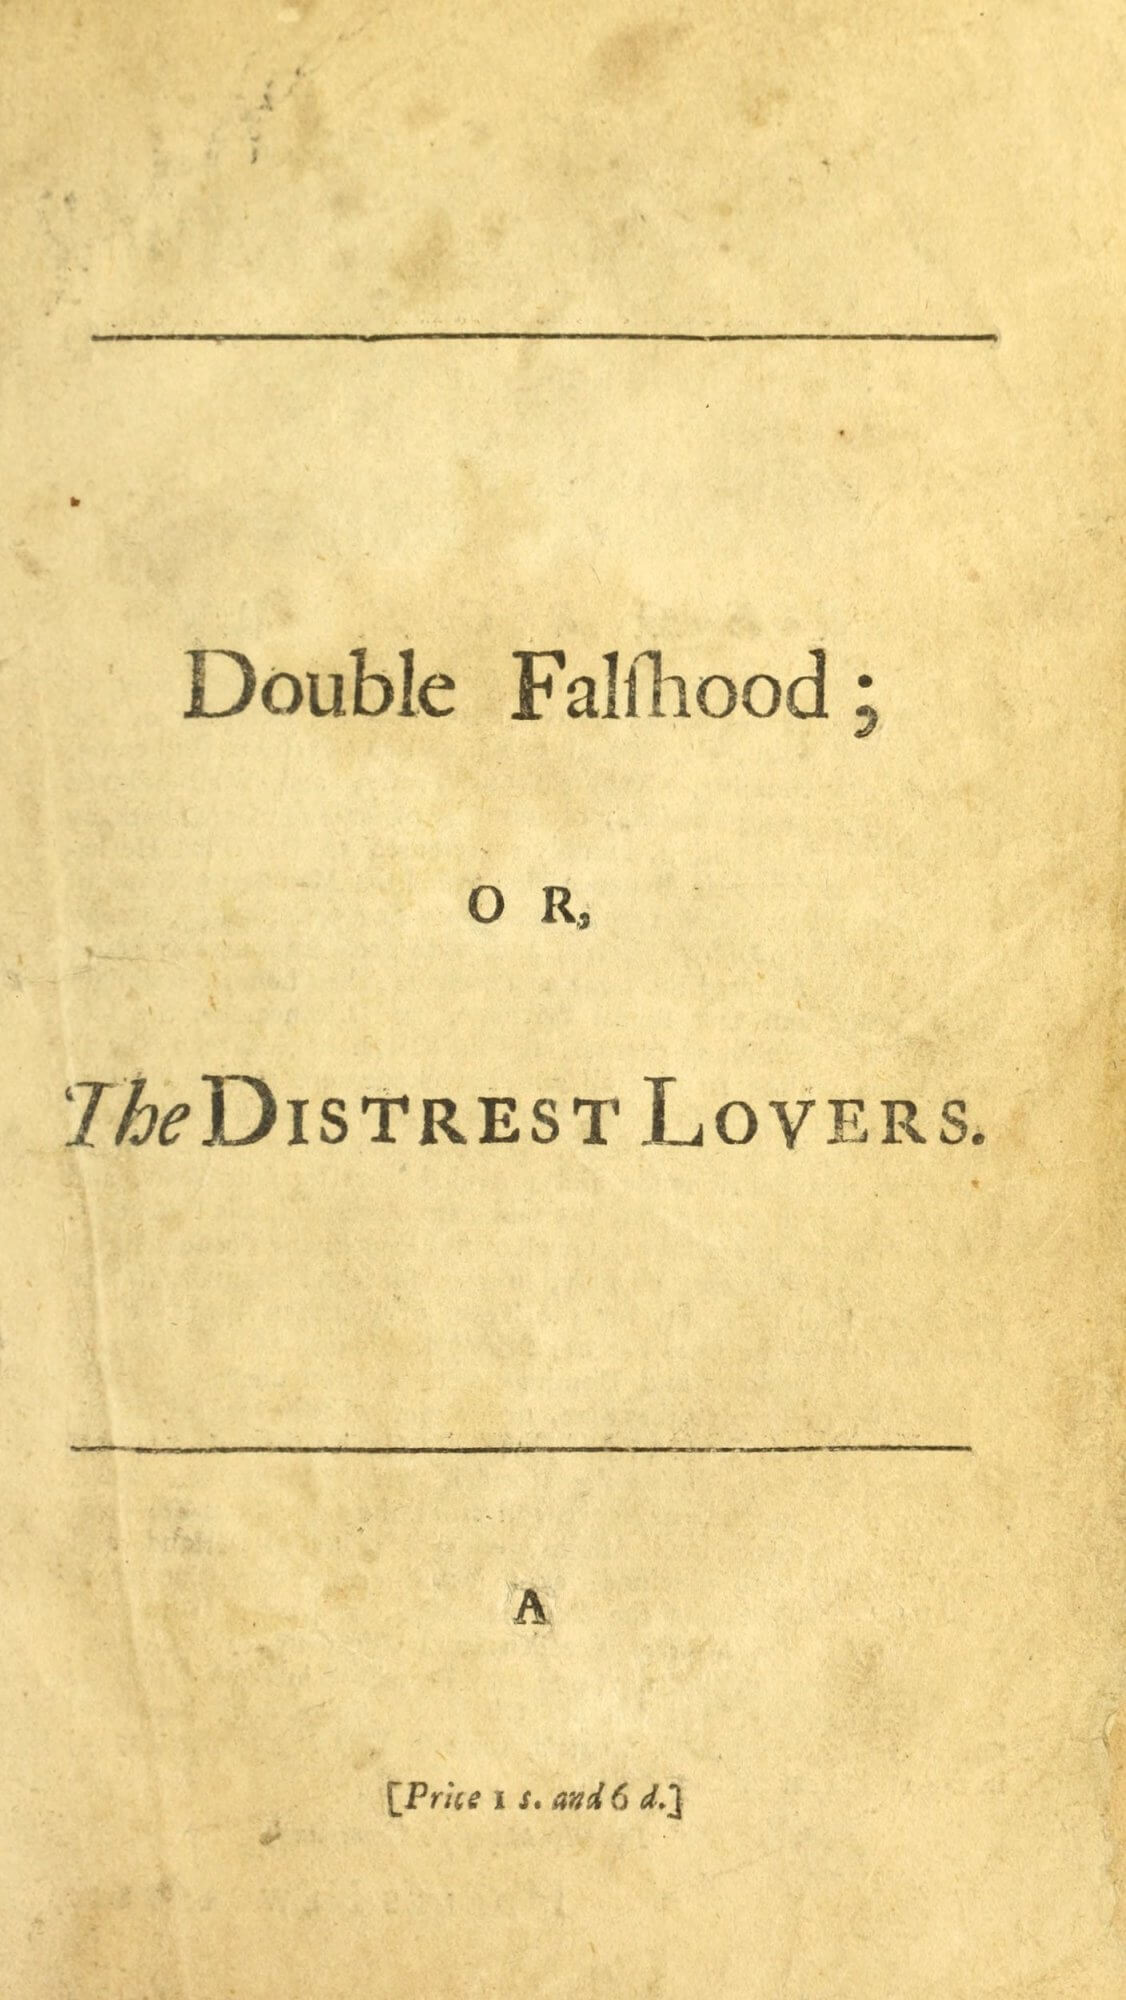 This half-title page includes the price for the volume printed at the bottom of the page. The full imprint can be found on the full title page on the next leaf.